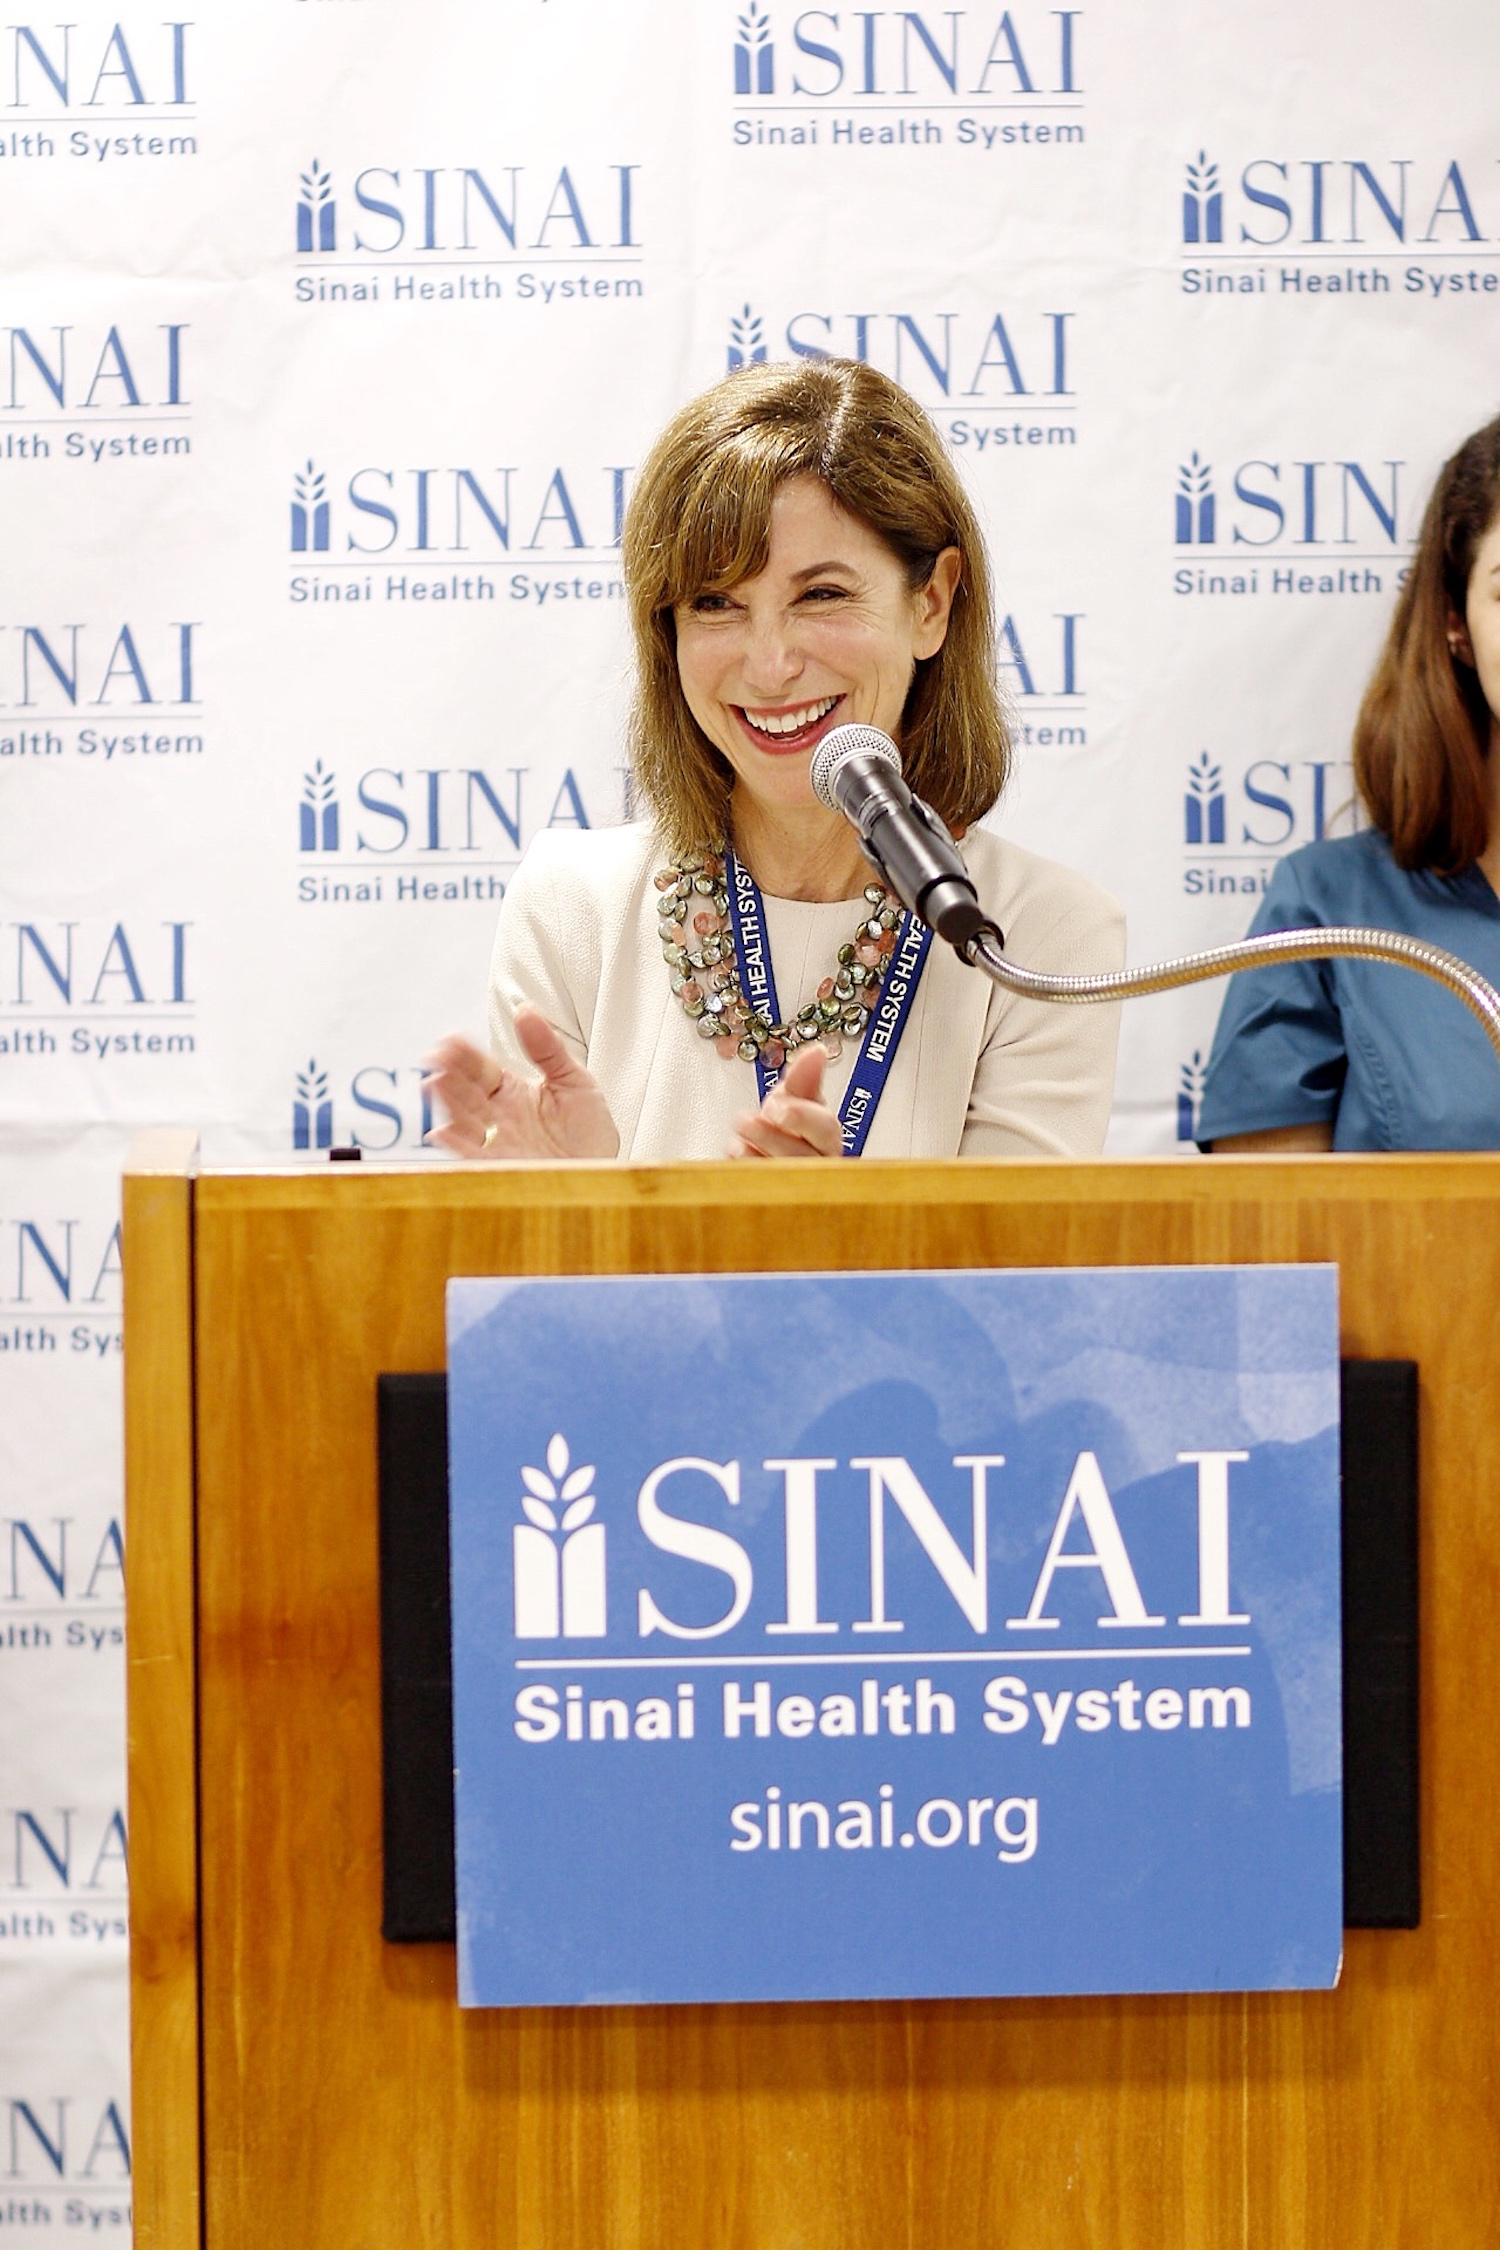 - Sinai's behavioral health service expansion comes as Chicagoans are finding it hard to access the behavioral healthcare they need.